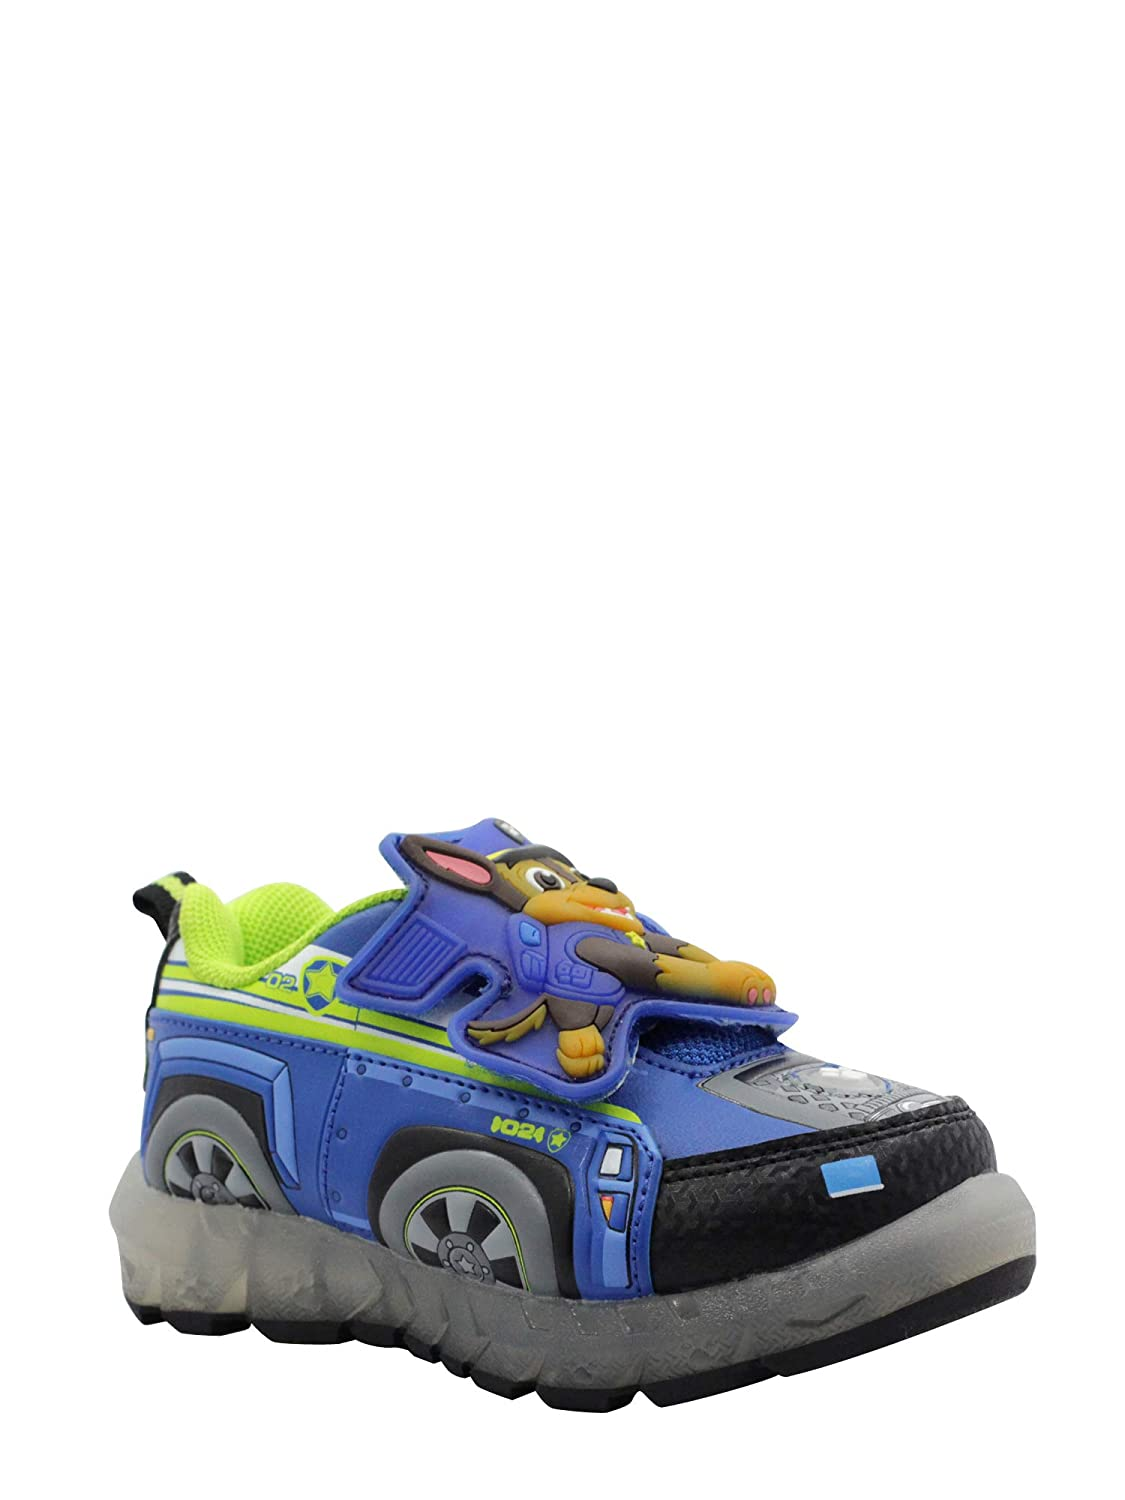 Paw Patrol Toddler Boys' Light-Up Athletic Shoe (10)